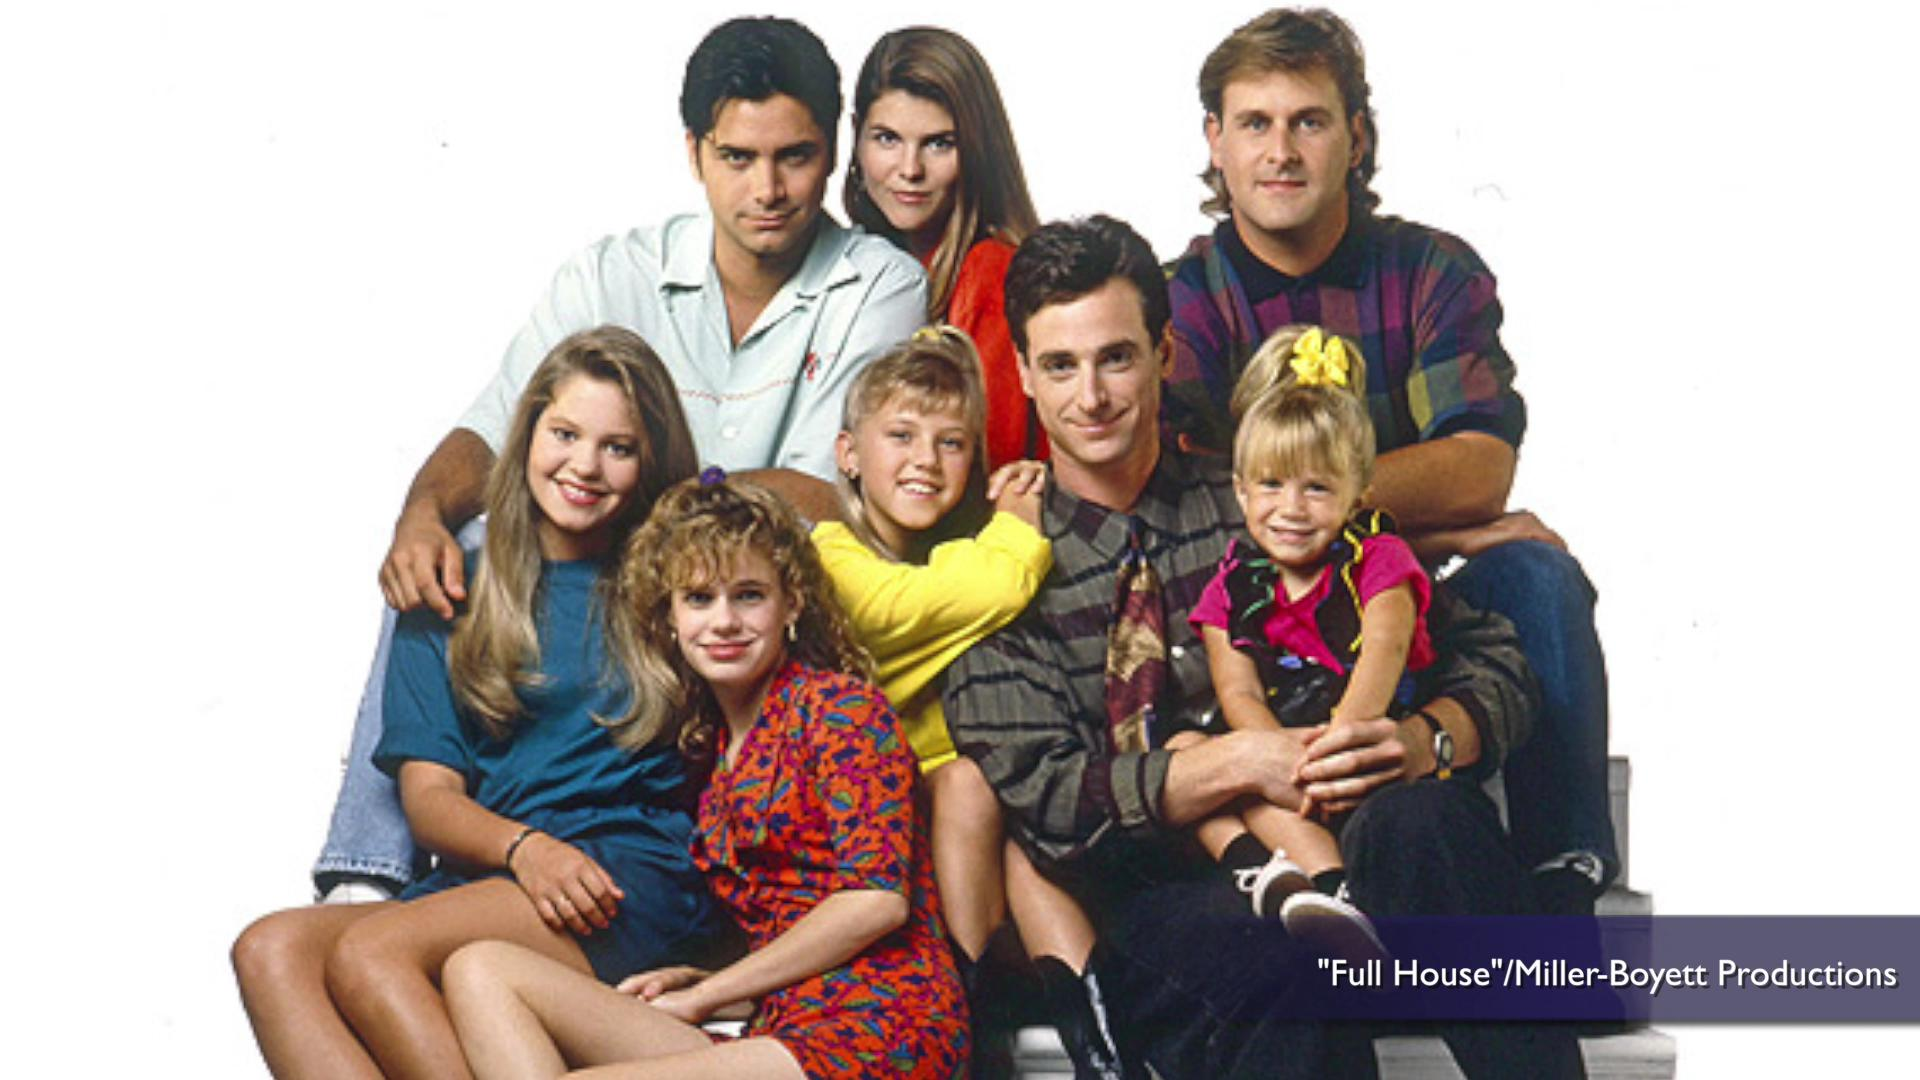 'Full House' sequel 'Fuller House' confirmed, coming to Netflix